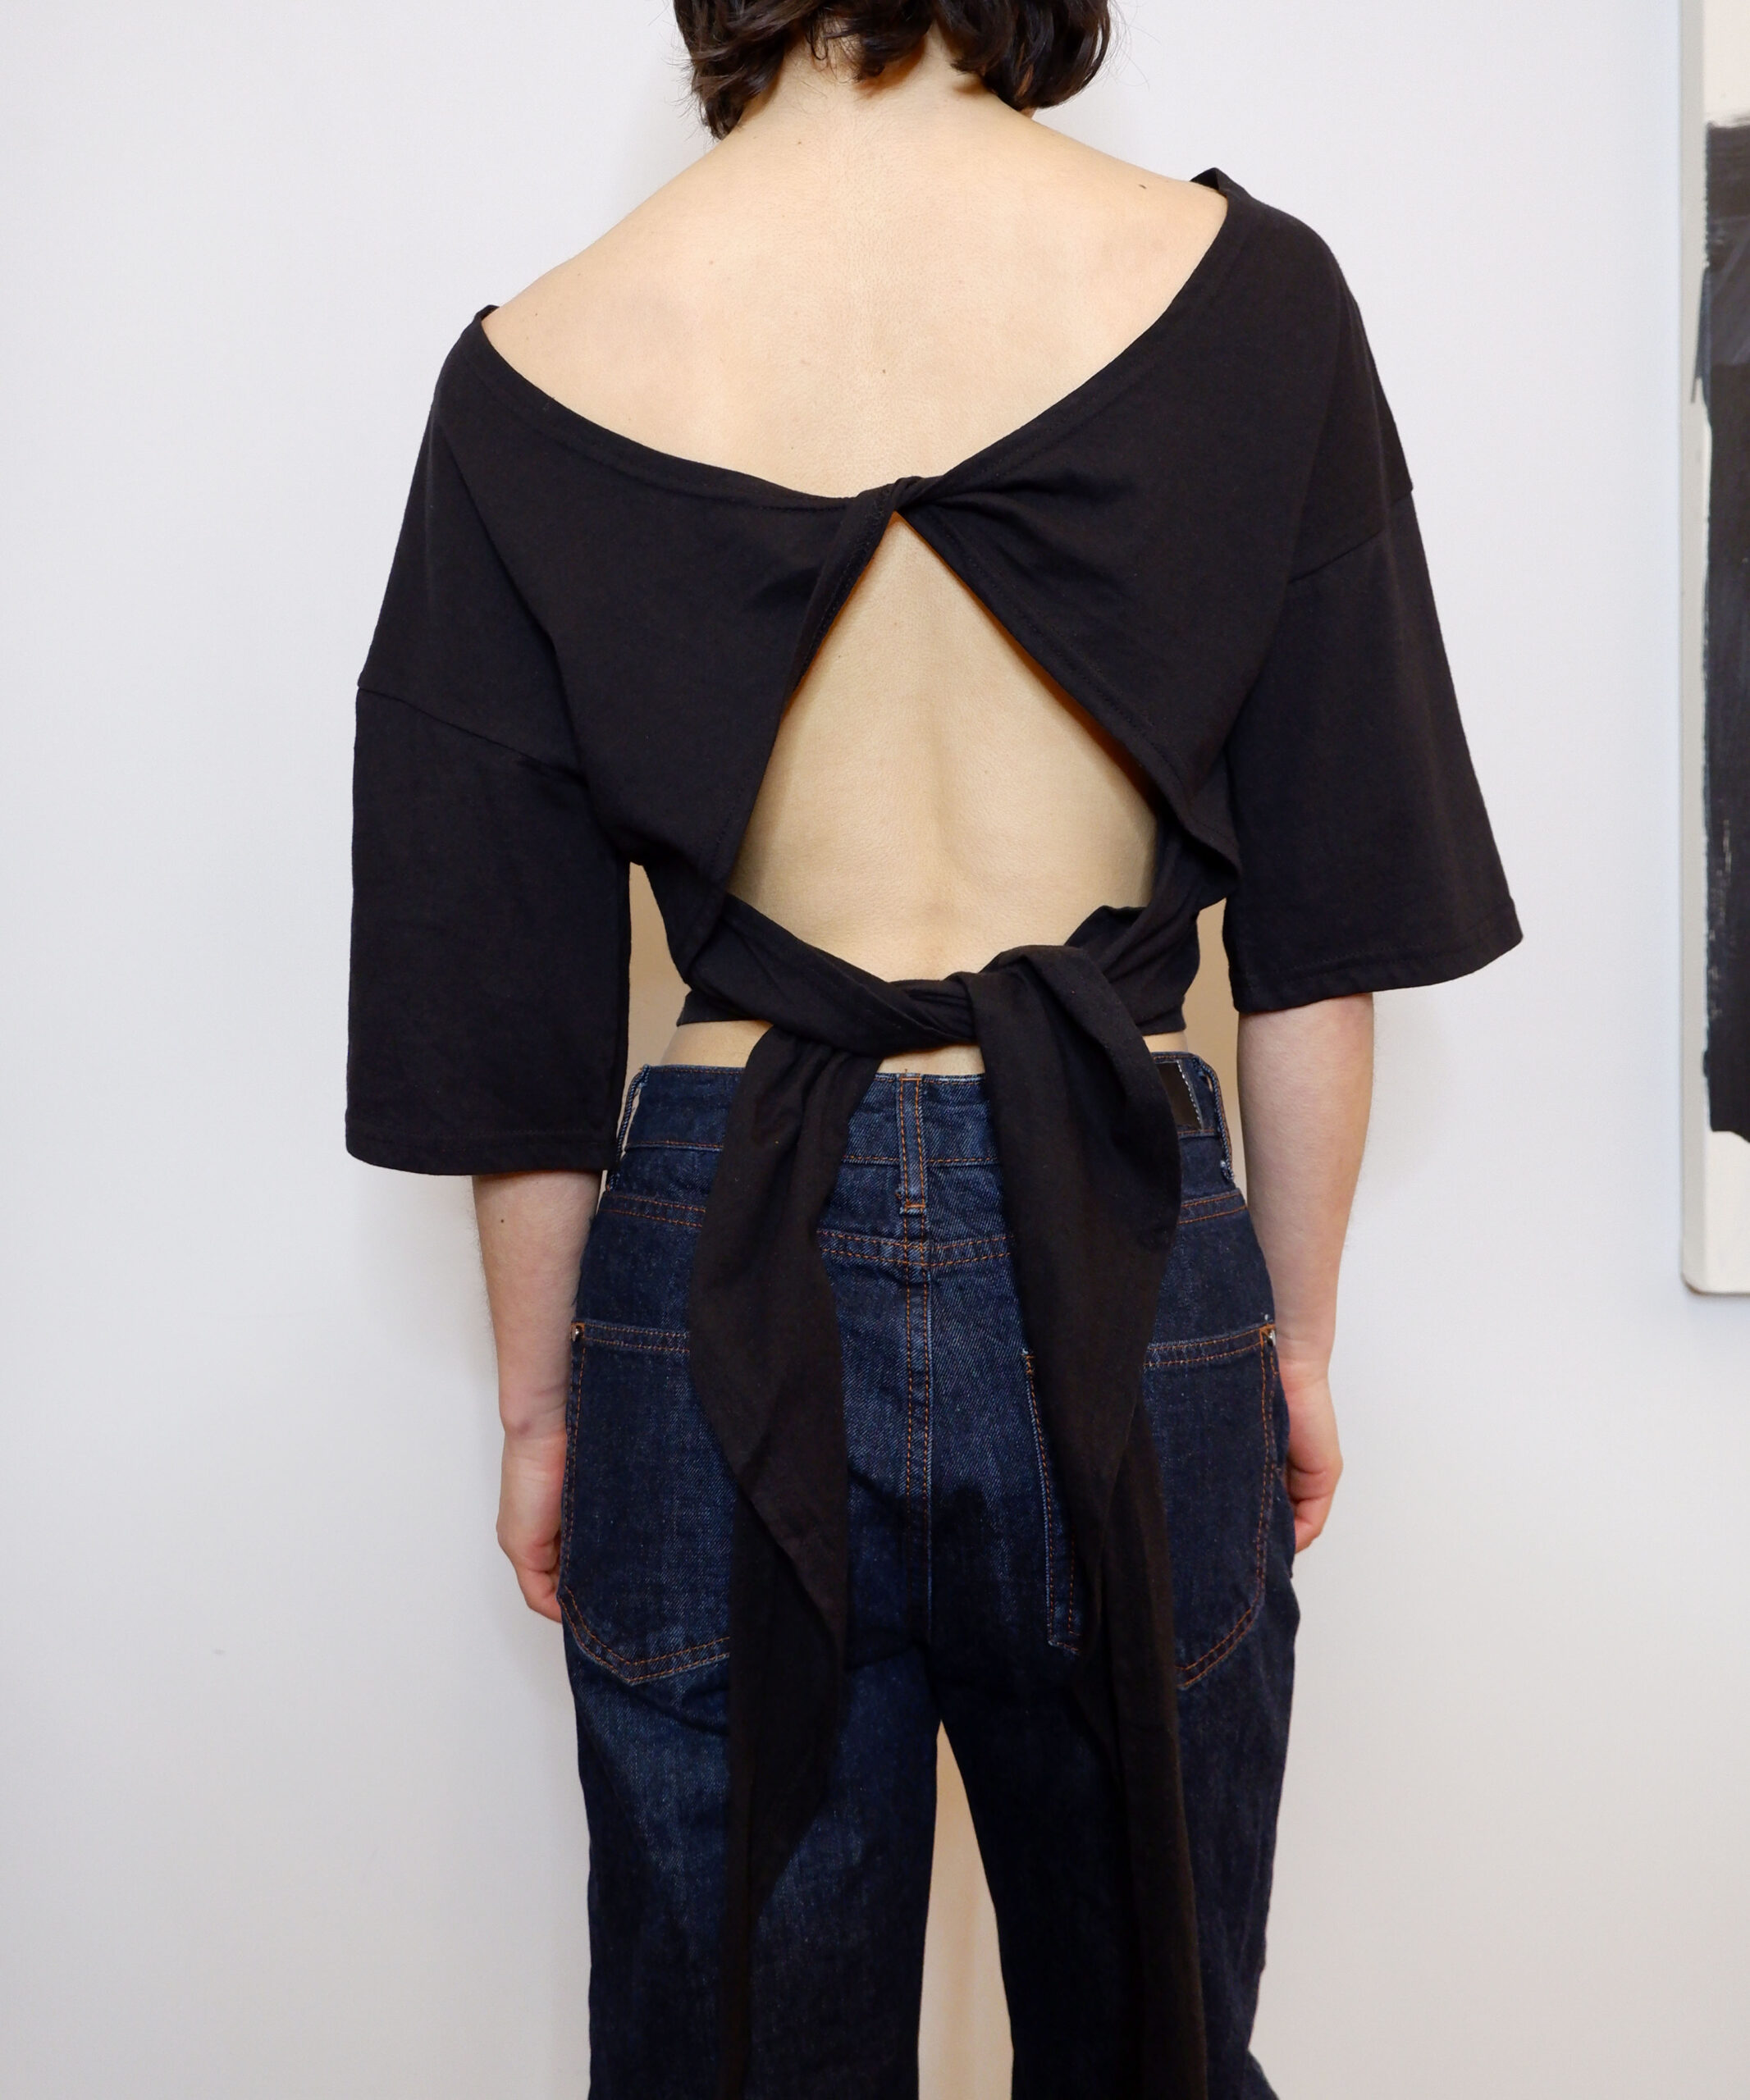 Open-back ribbon tie cropped t-shirt in black | The Dallant | Korean fashion online shopping site